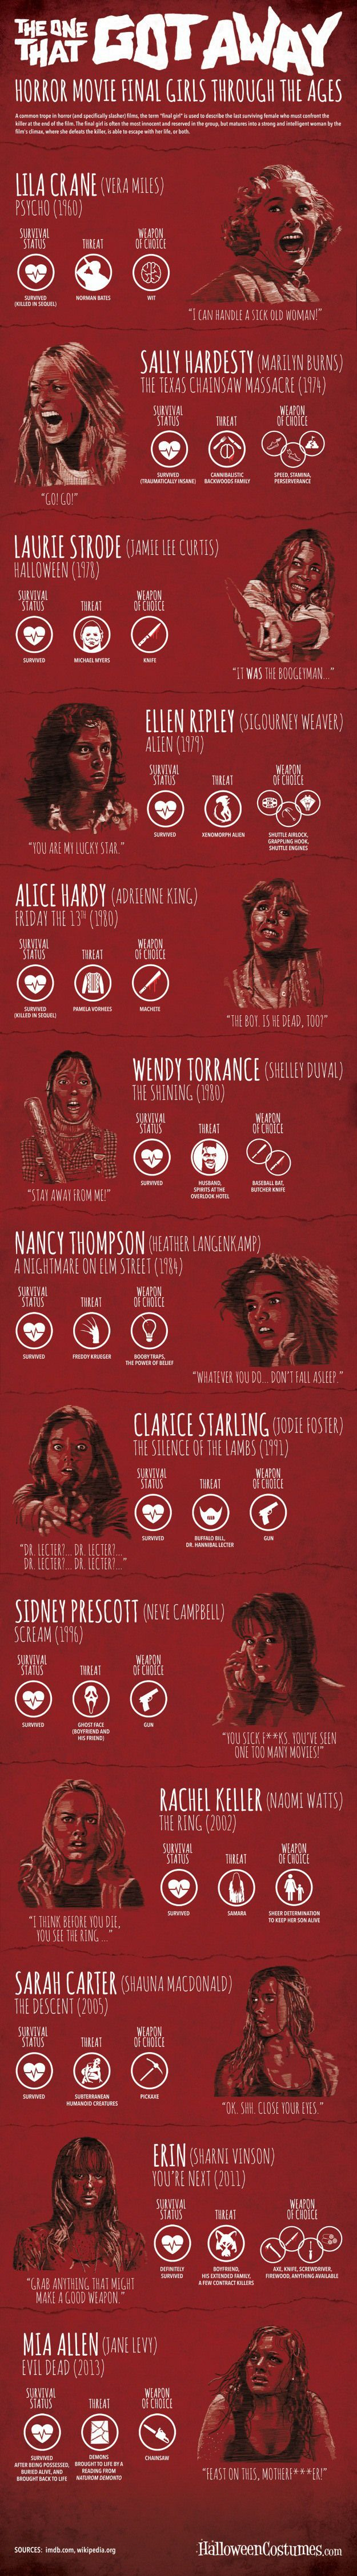 The One That Got Away: Horror Movie Final Girls Through The Ages Infographic